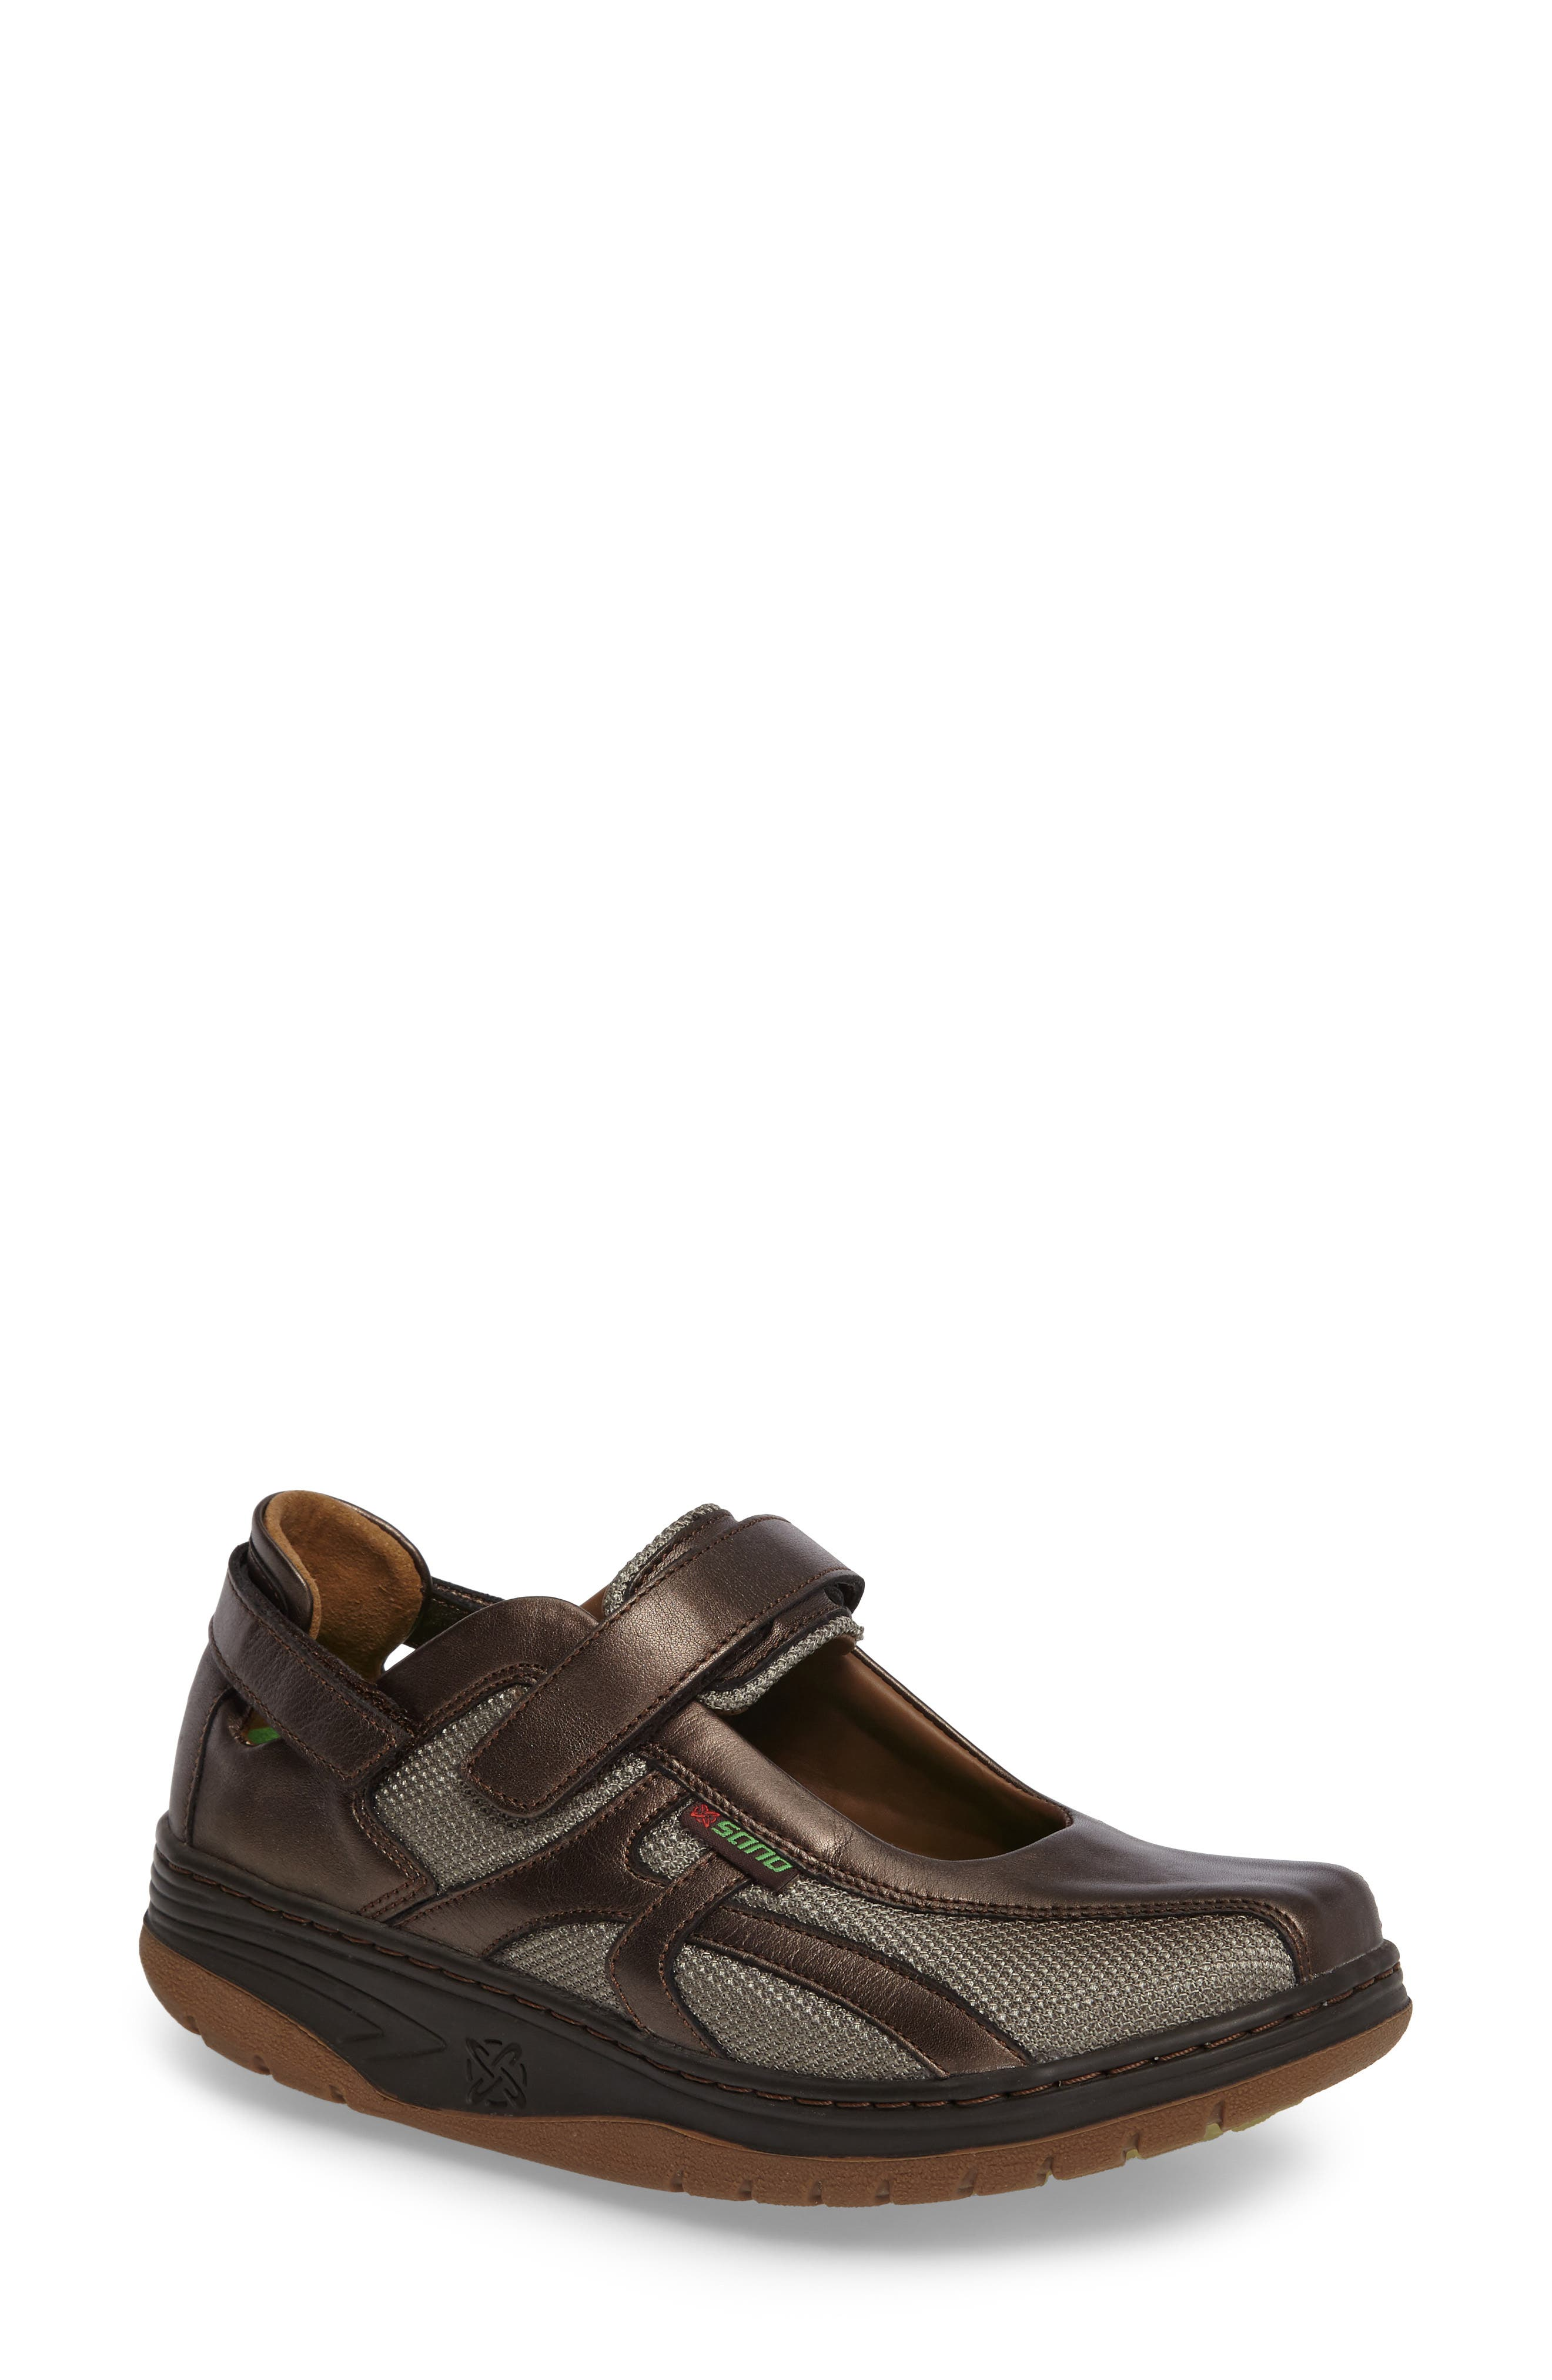 Sano by Mephisto 'Excess' Walking Shoe,                             Alternate thumbnail 5, color,